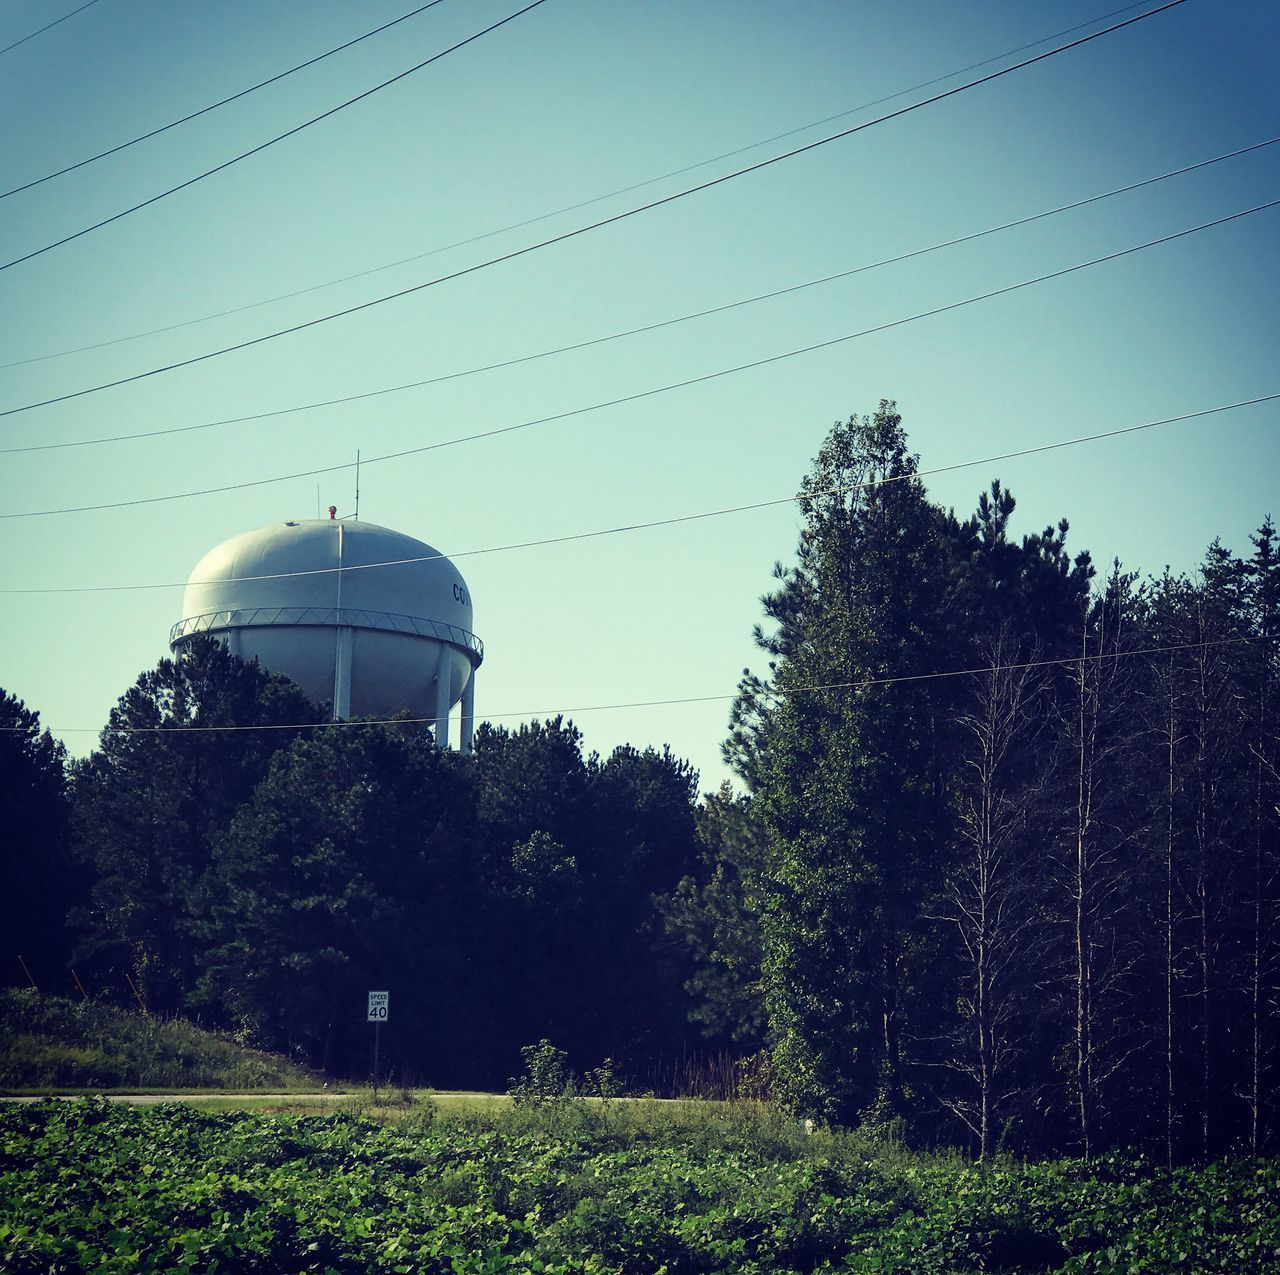 tree, cable, fuel and power generation, storage tank, no people, day, growth, clear sky, architecture, outdoors, sky, nature